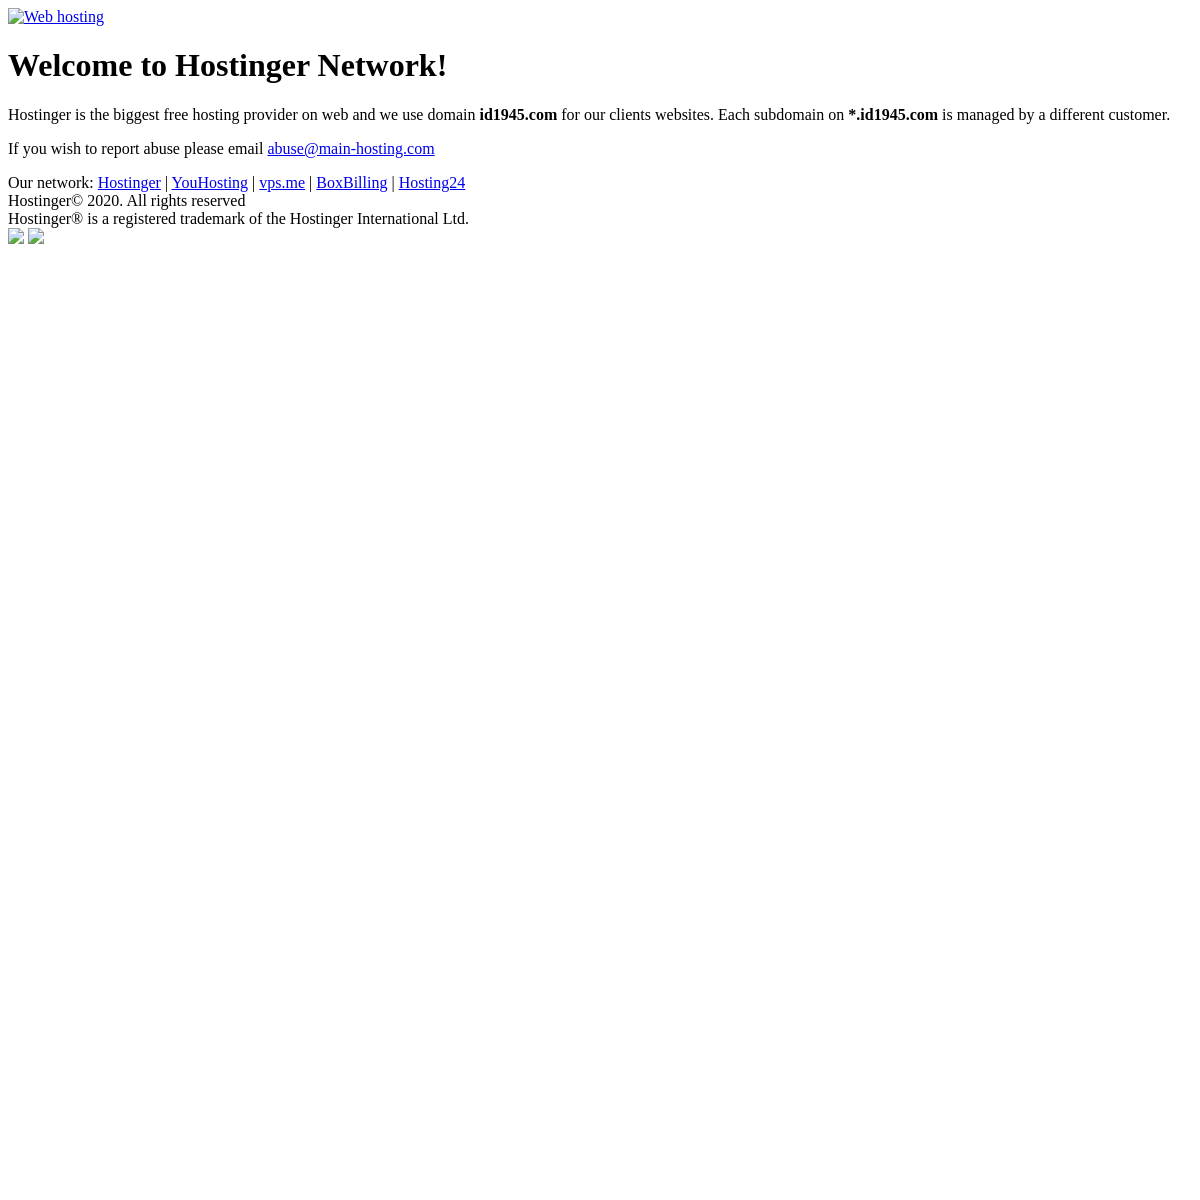 Welcome to id1945.com - Managed by Hostinger